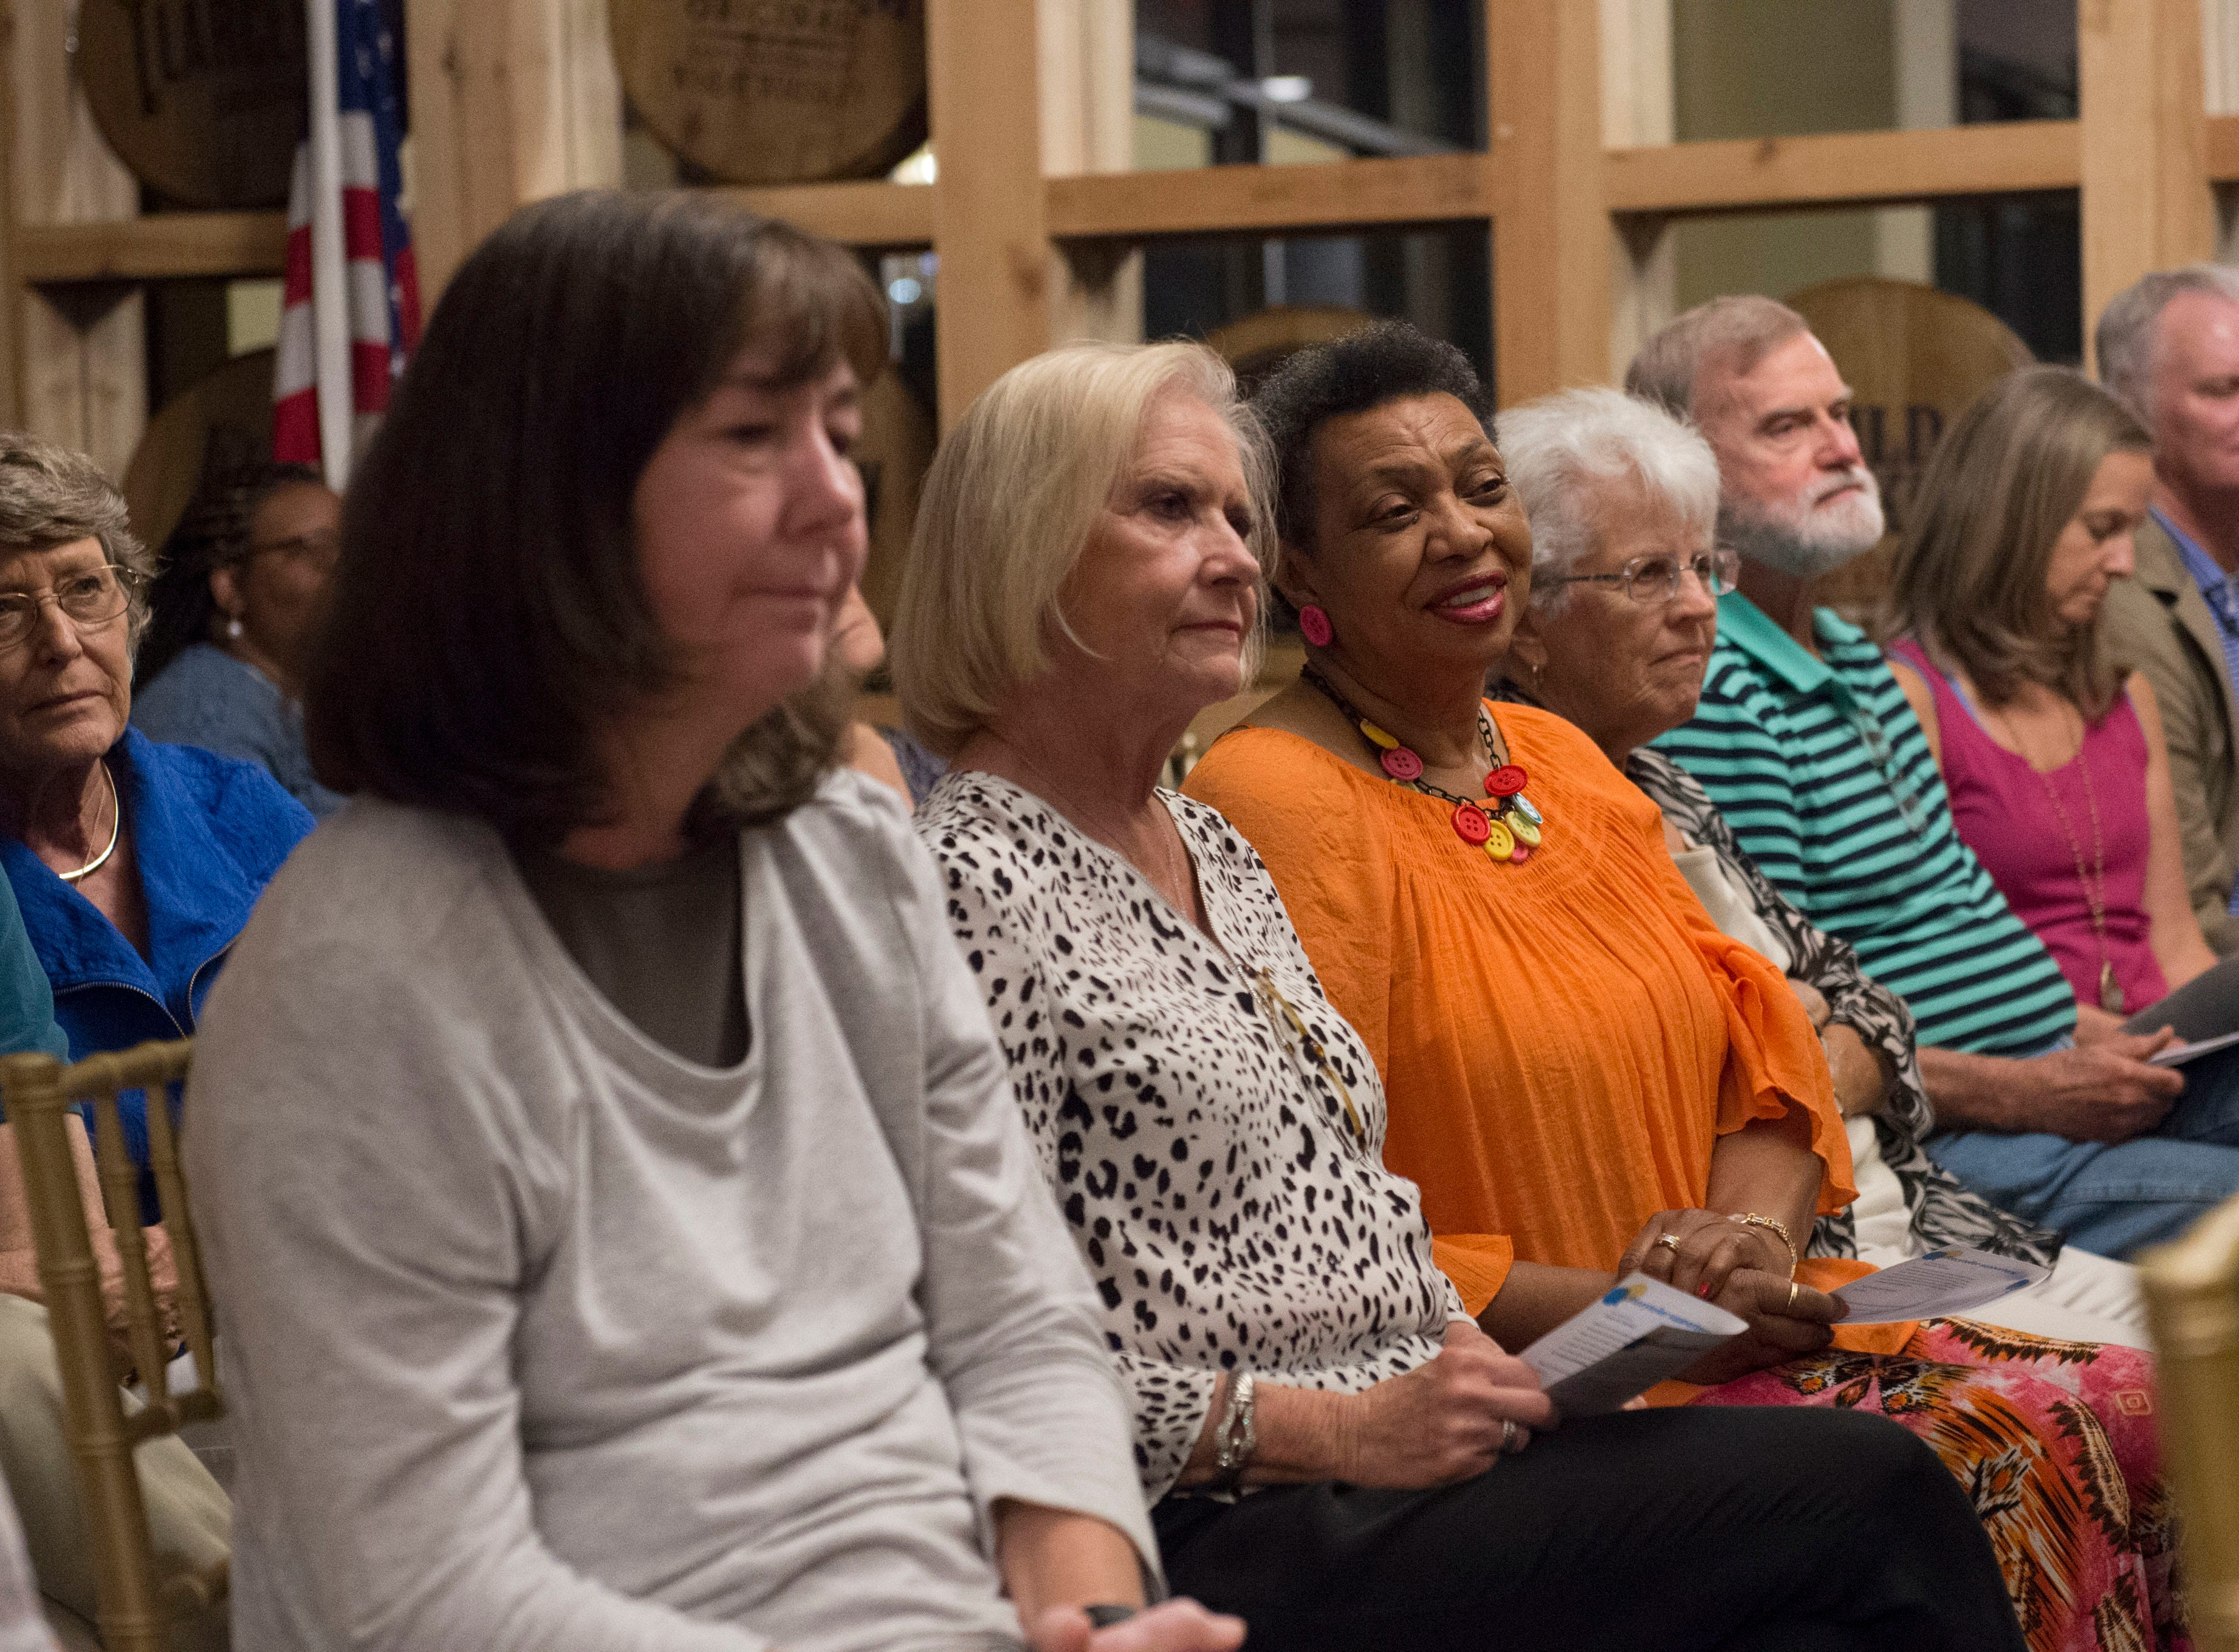 Guests listen intently at Mississippi Storytellers: Growing Up, a night of storytelling by Jacksonians, held at Rickhouse. Tuesday, Sept. 18, 2018.